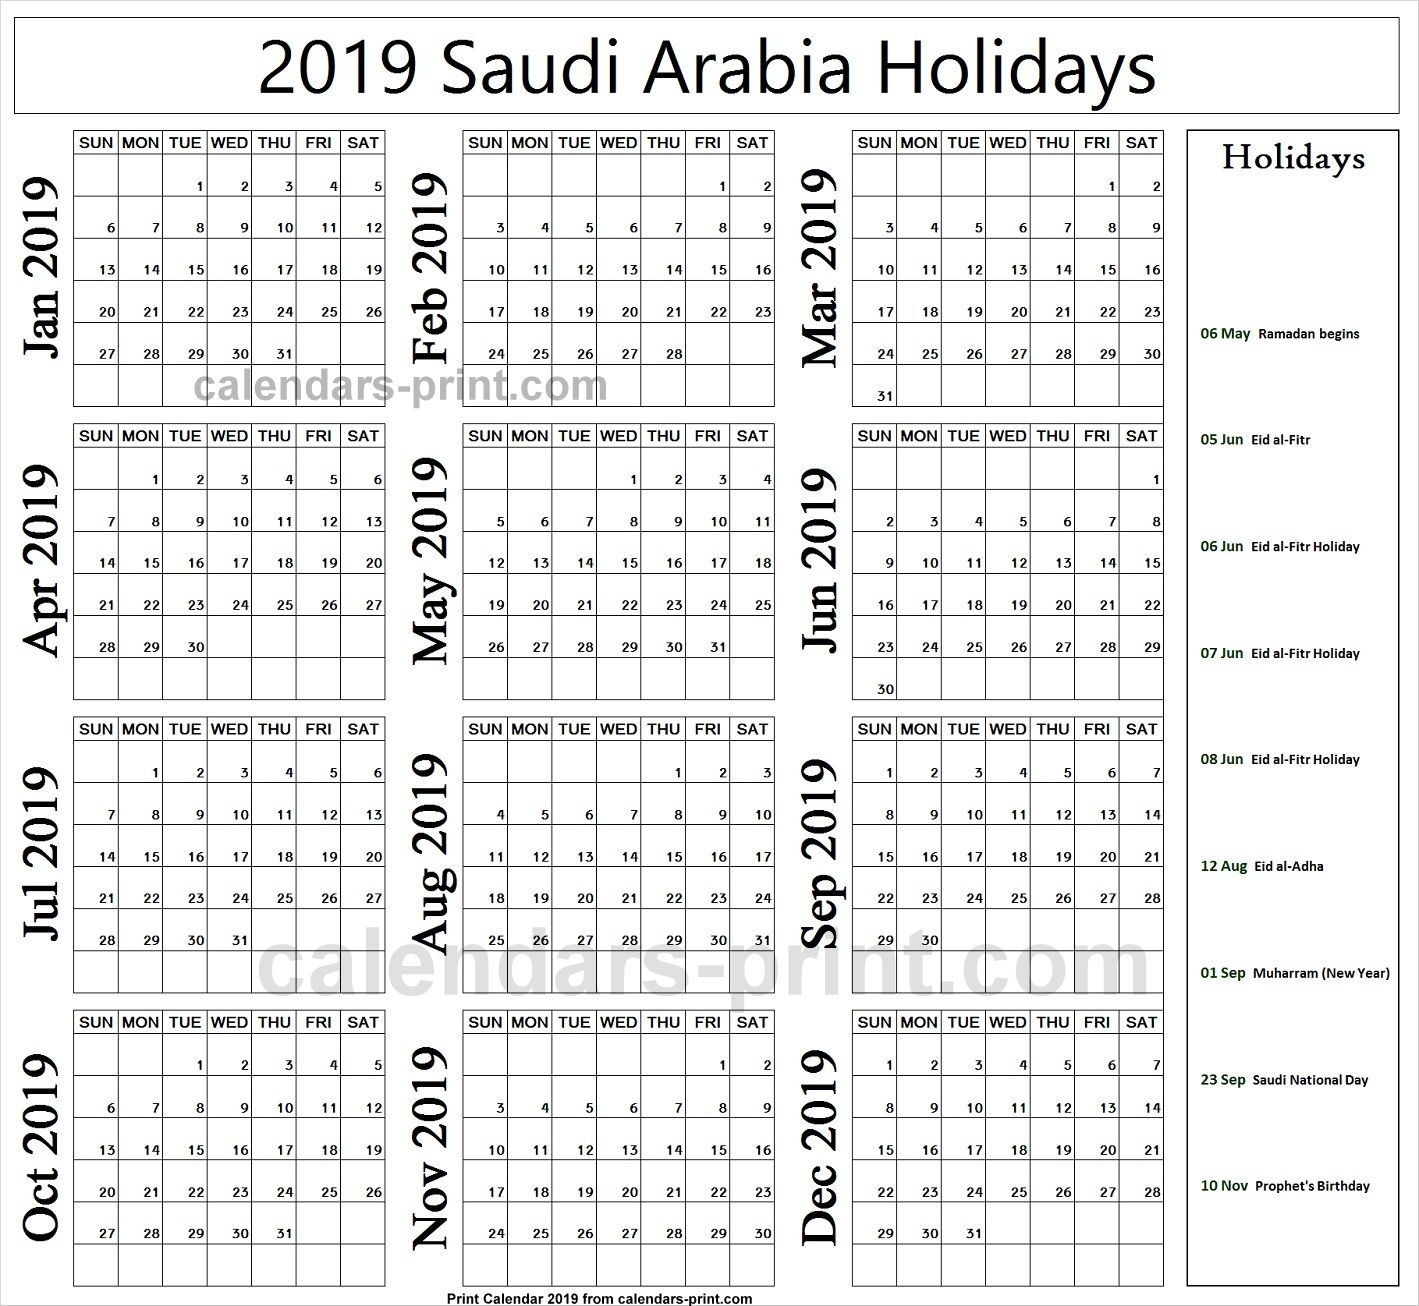 2019 Bank Holidays Saudi Arabia Holiday Calendar Holiday Calendar Printable Year Calendar Planner